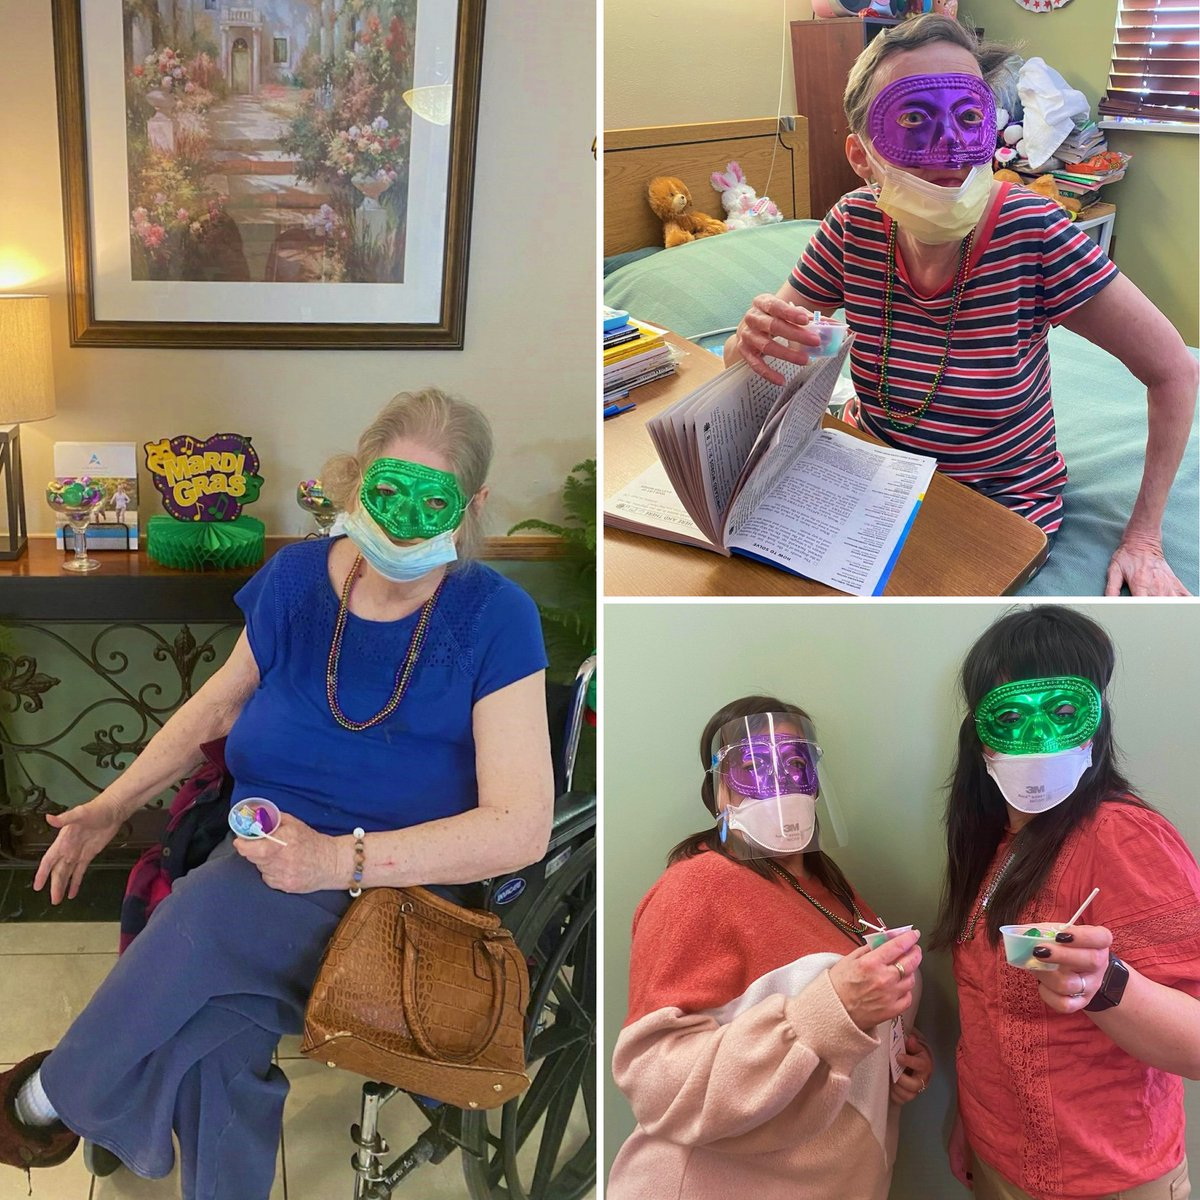 We celebrated #MardiGras at #AzriaHealthOlathe! Even though it was unusually cold, we were warm with the best company. We all ate and felt full of life! We celebrated with chocolates and beads; it was so much fun!   #AzriaHealth #Celebrate #FatTuesday #Fun #Beads #Chocolate